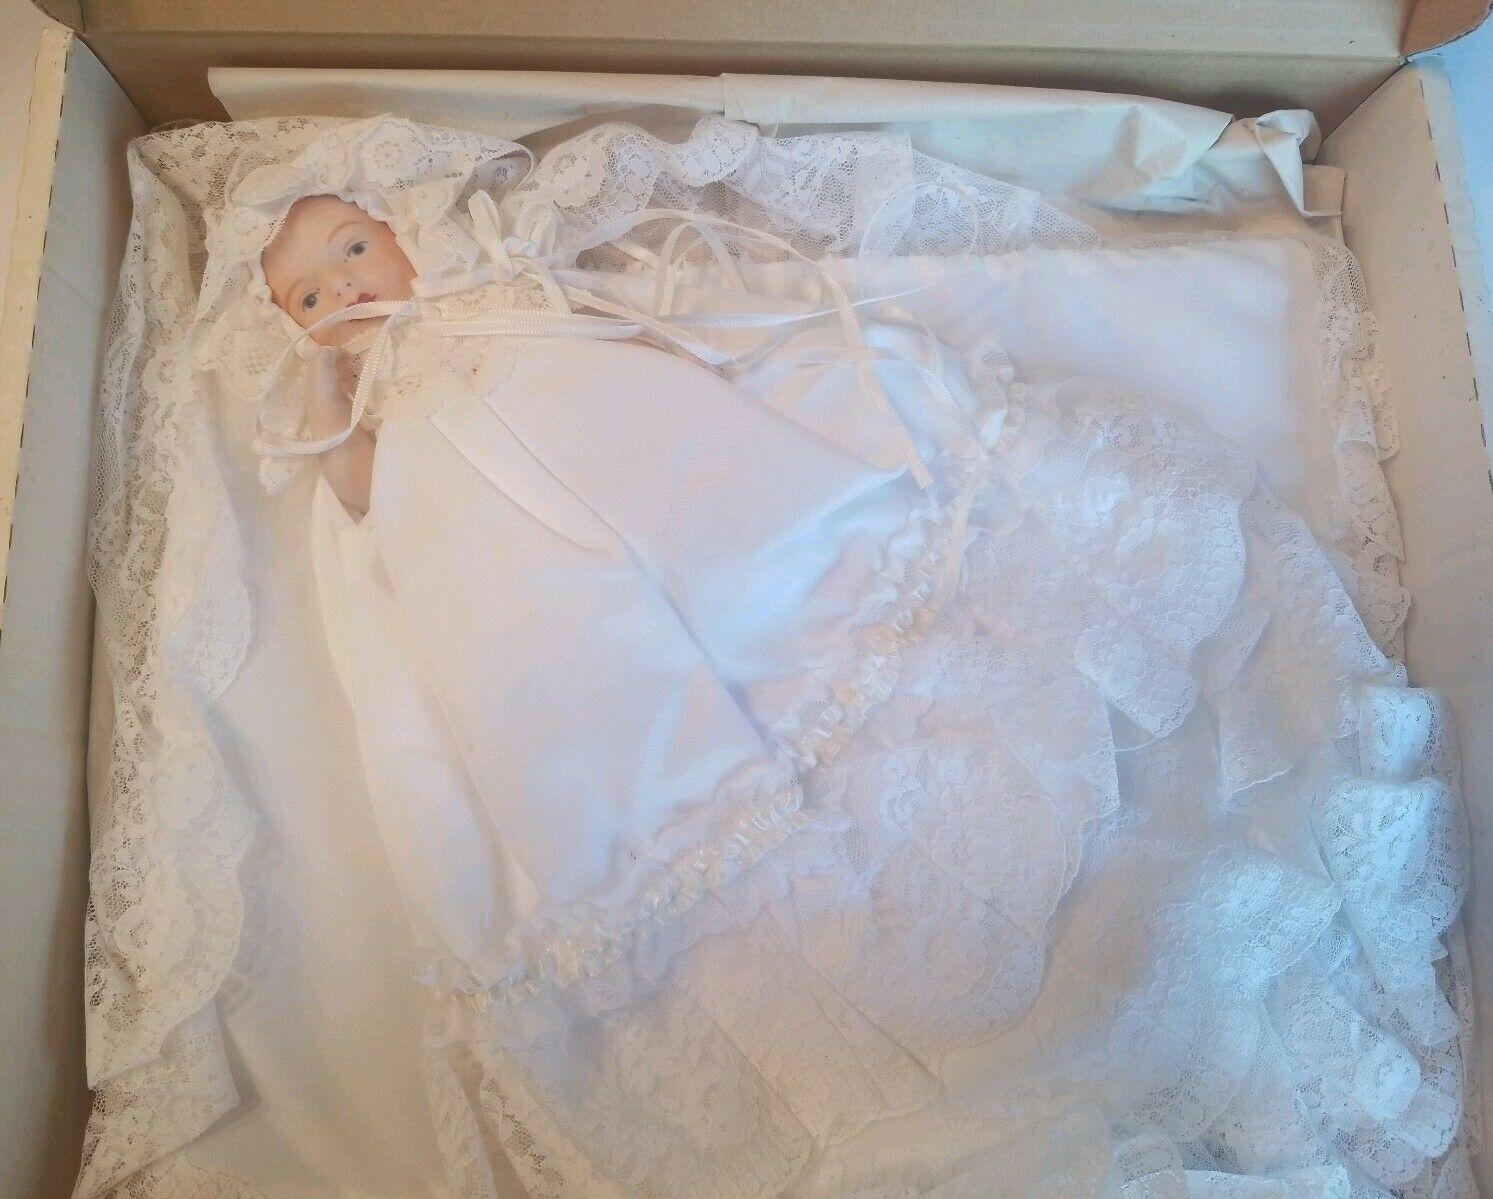 JUDY CUDDY ANTIQUE REPRO IRISH BABY CHRISTENING GOWN 6  FULL PORCELAIN DOLL